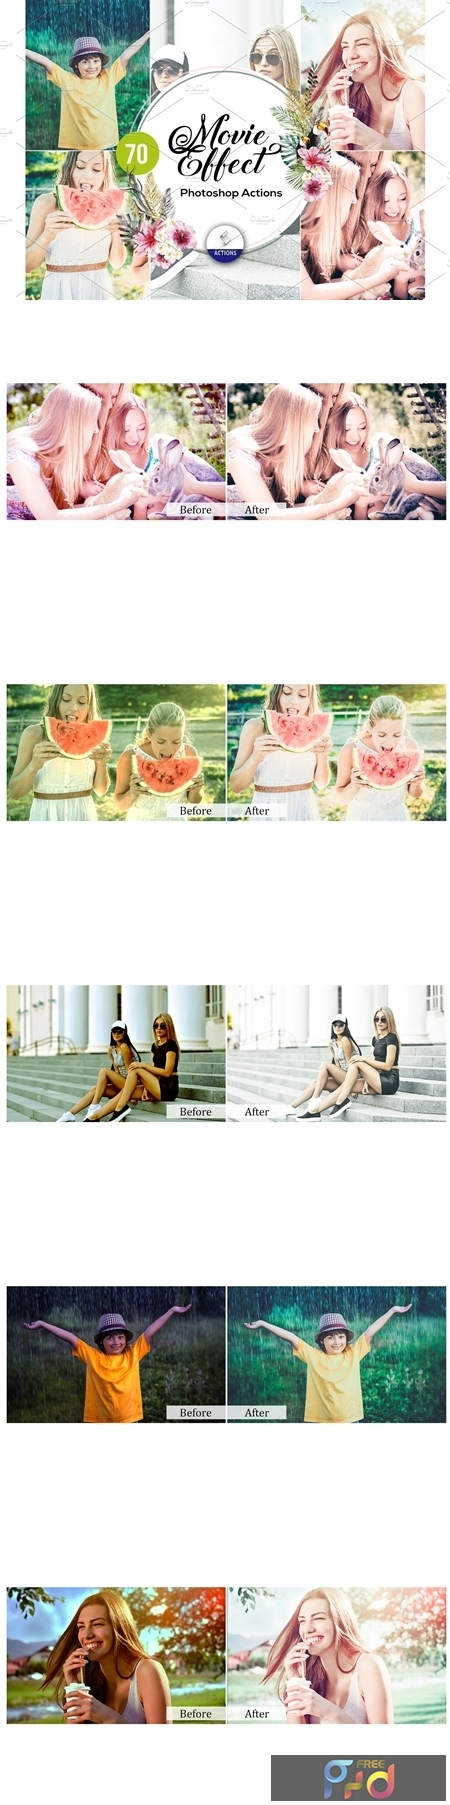 70 Movie Effect Photoshop Actions 3937911 1